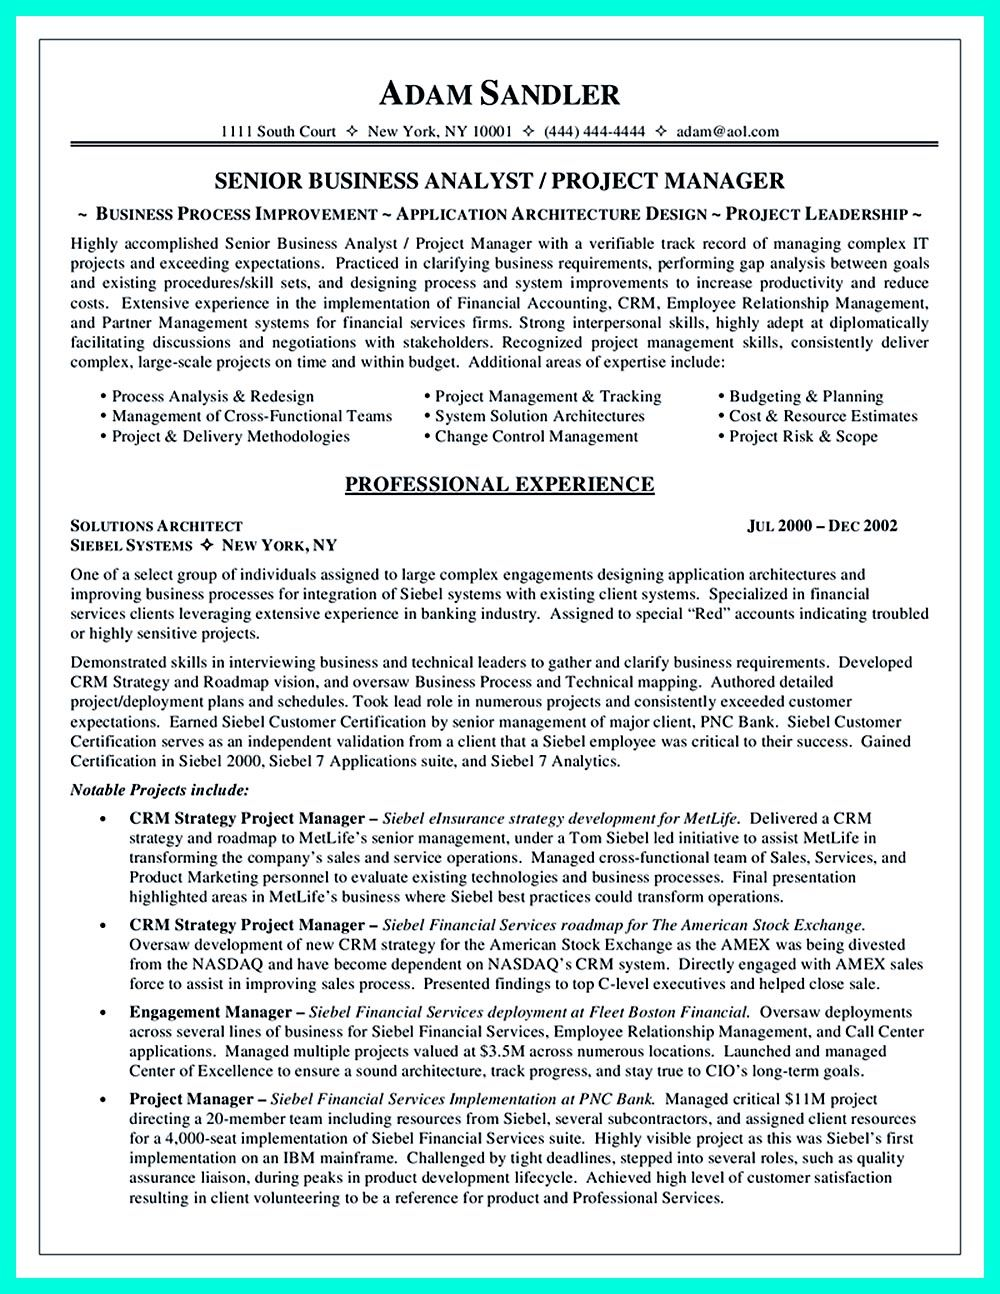 Data Analyst Resume Will Describe Your Professional Profile, Skills,  Education And Experience. The  Business Process Analyst Resume